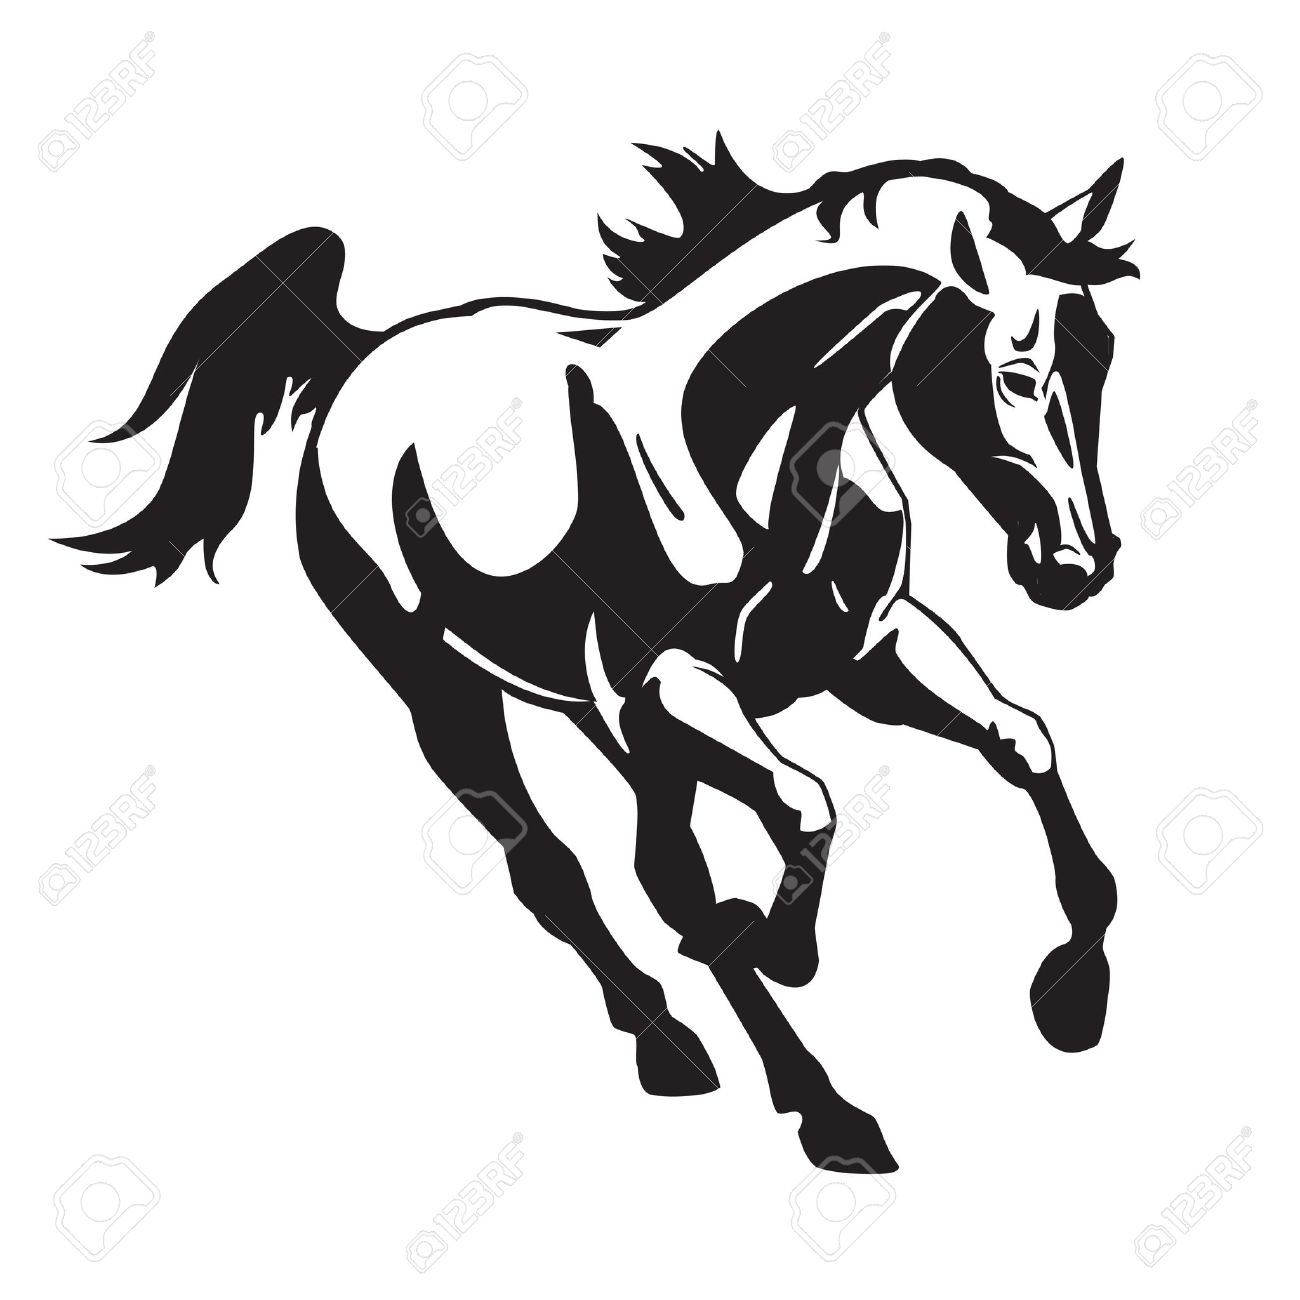 Running Horse Black And White Vector Image Isolated On White Royalty Free Cliparts Vectors And Stock Illustration Image 15260552